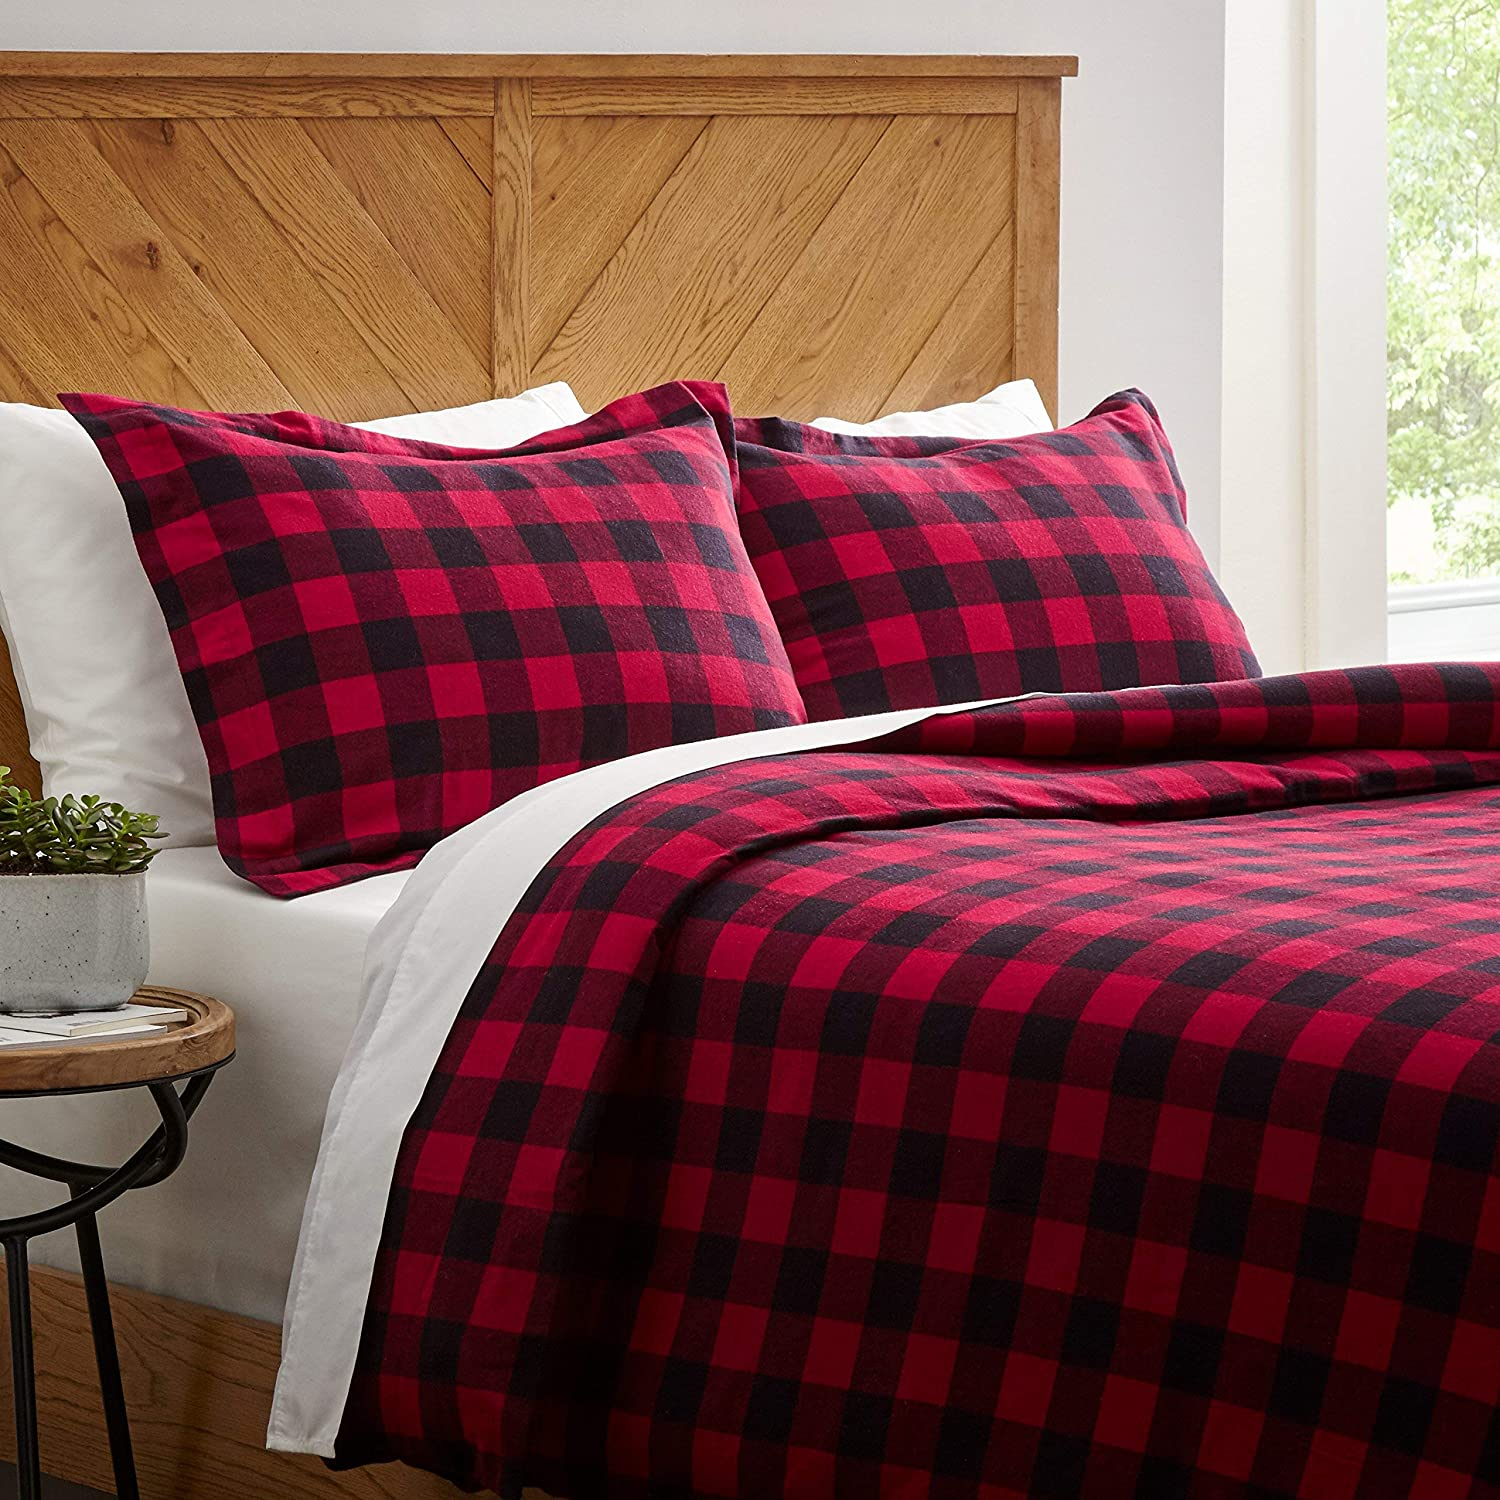 Flannel Duvet Cover Set, Full / Queen, Red and Black